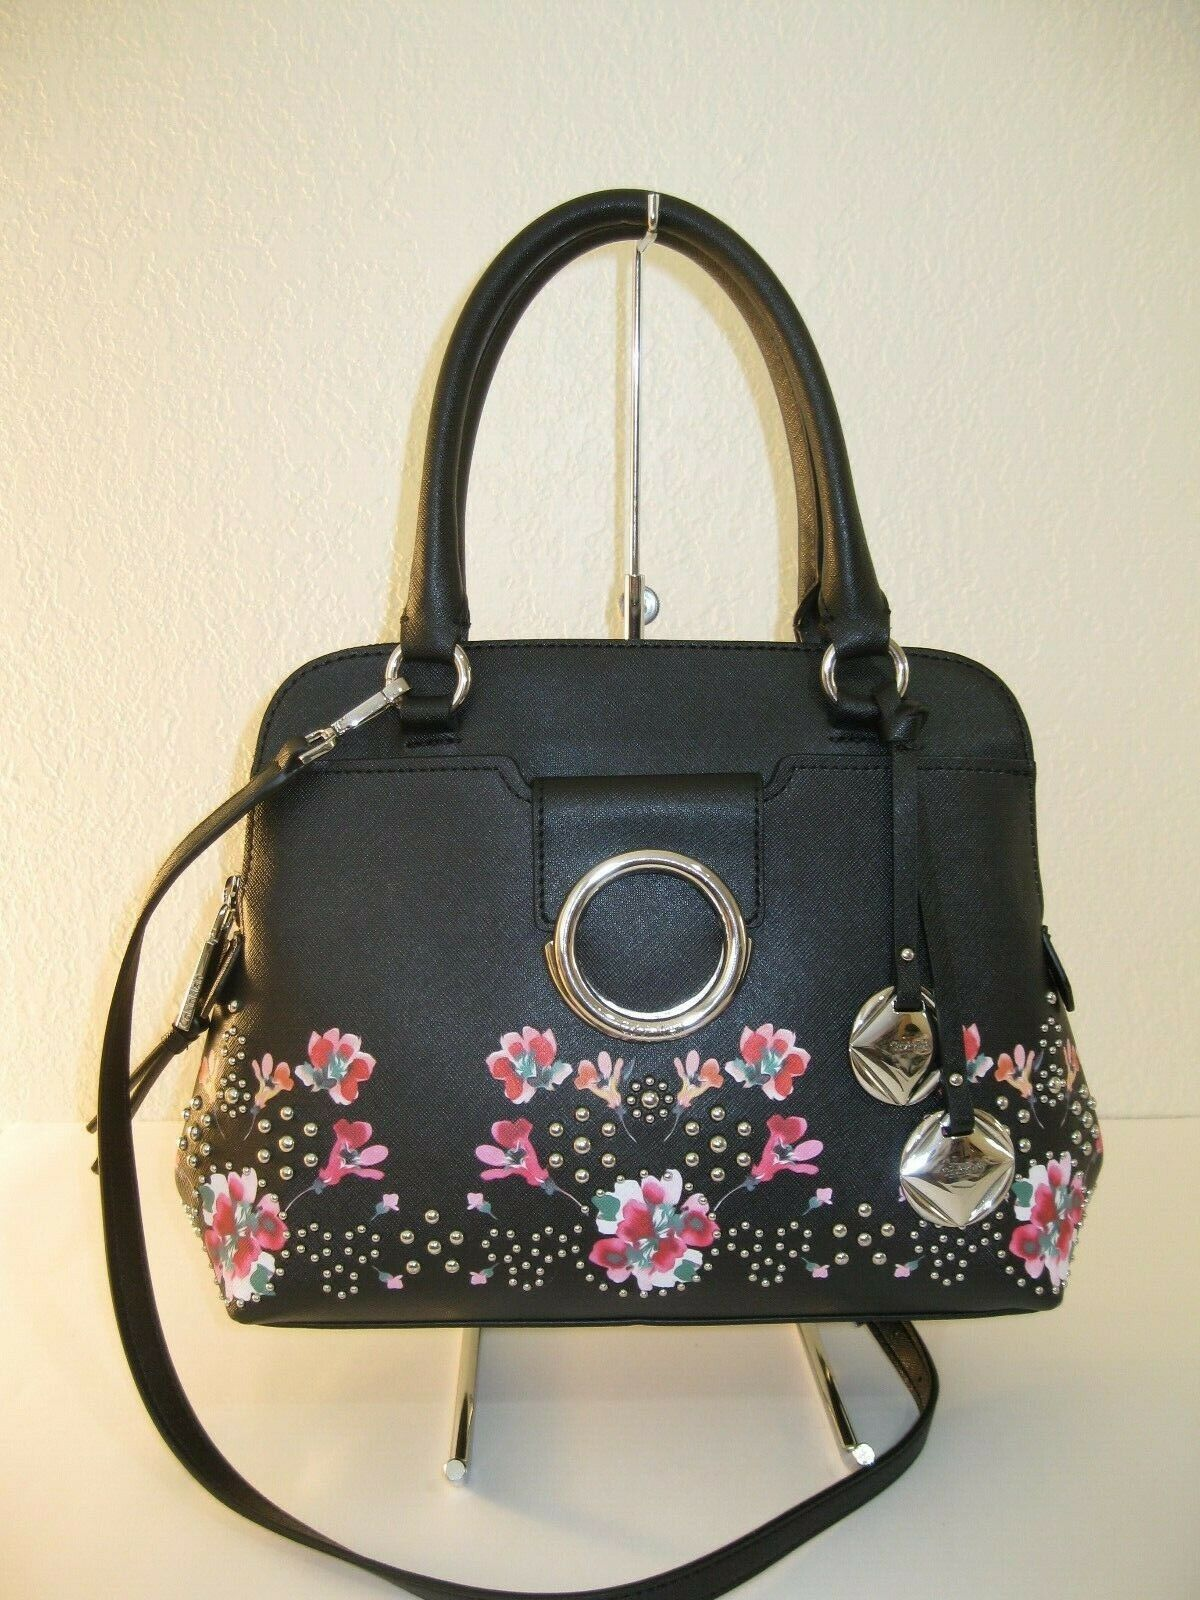 black saffiano leather reese floral convertible satchel